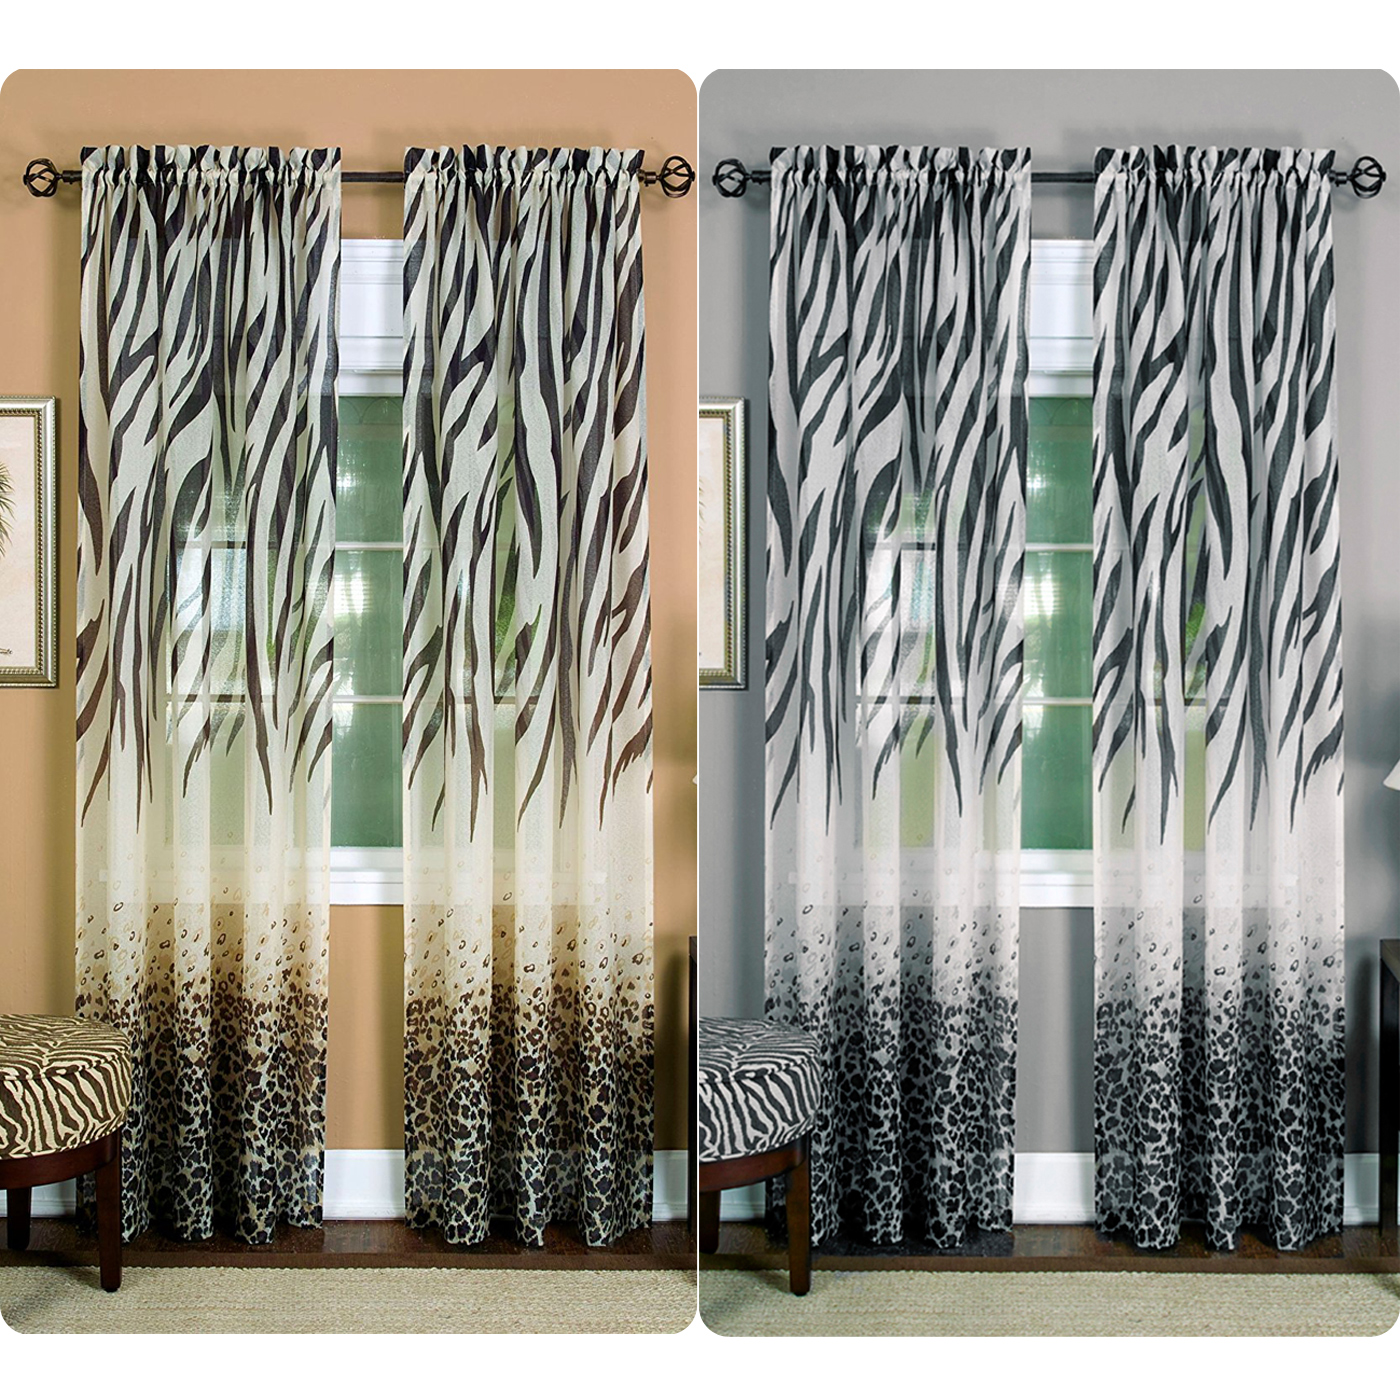 Image of: Images Details About Window 2pack Panel Curtain Animal Print Zebra Semisheer Light Filtering Panel Ebay Window 2pack Panel Curtain Animal Print Zebra Semisheer Light